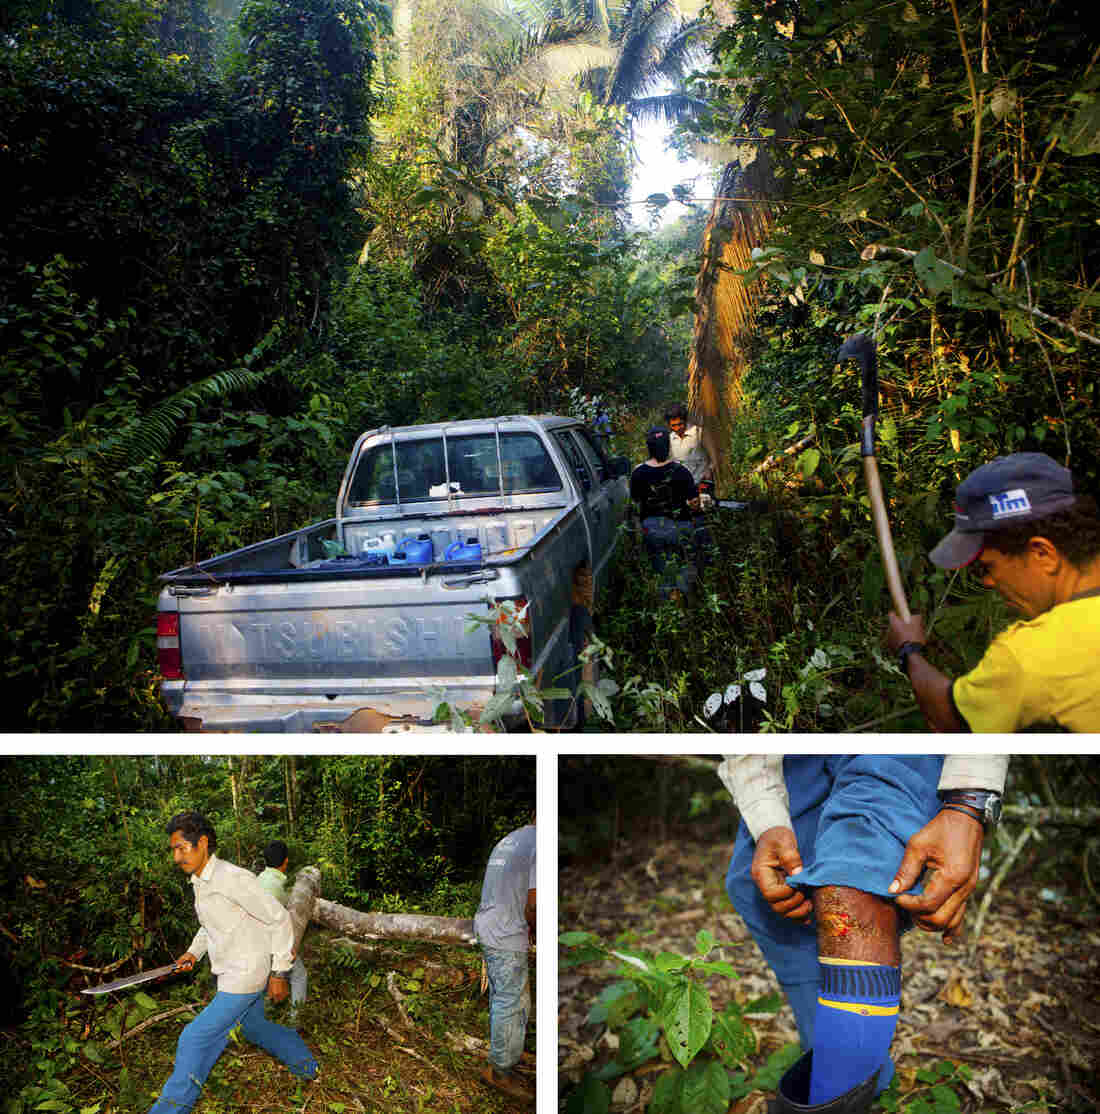 As the rubber tappers move deeper through the forest, clearing fallen logs from their path, they start seeing signs of illegal loggers.